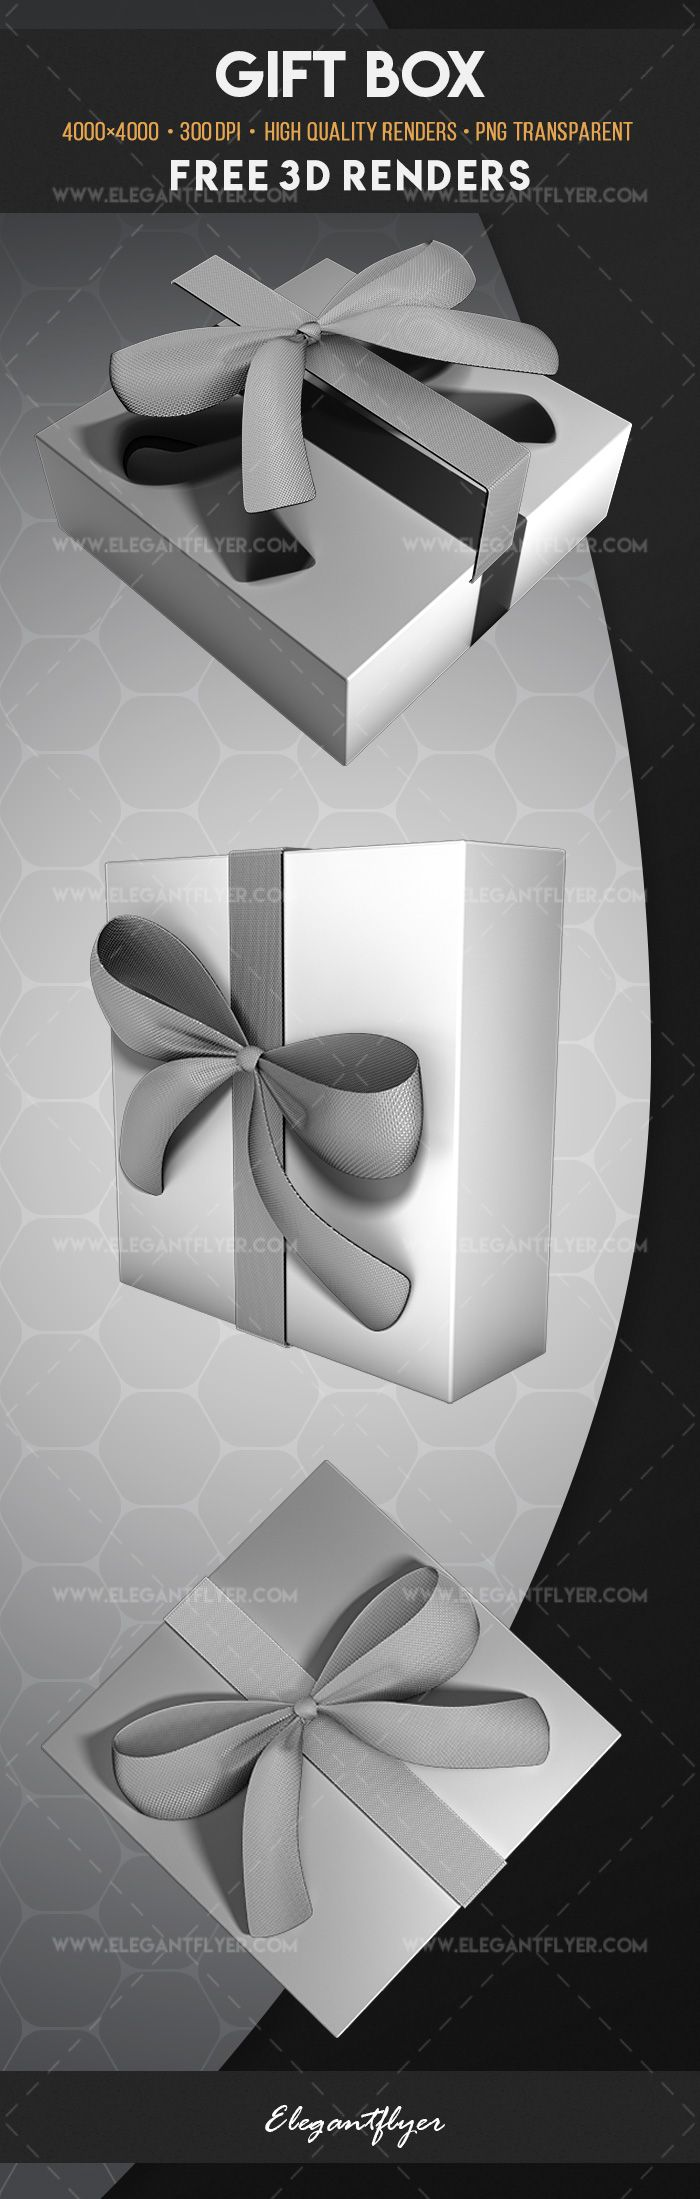 Gift Box – Free 3d Render Templates